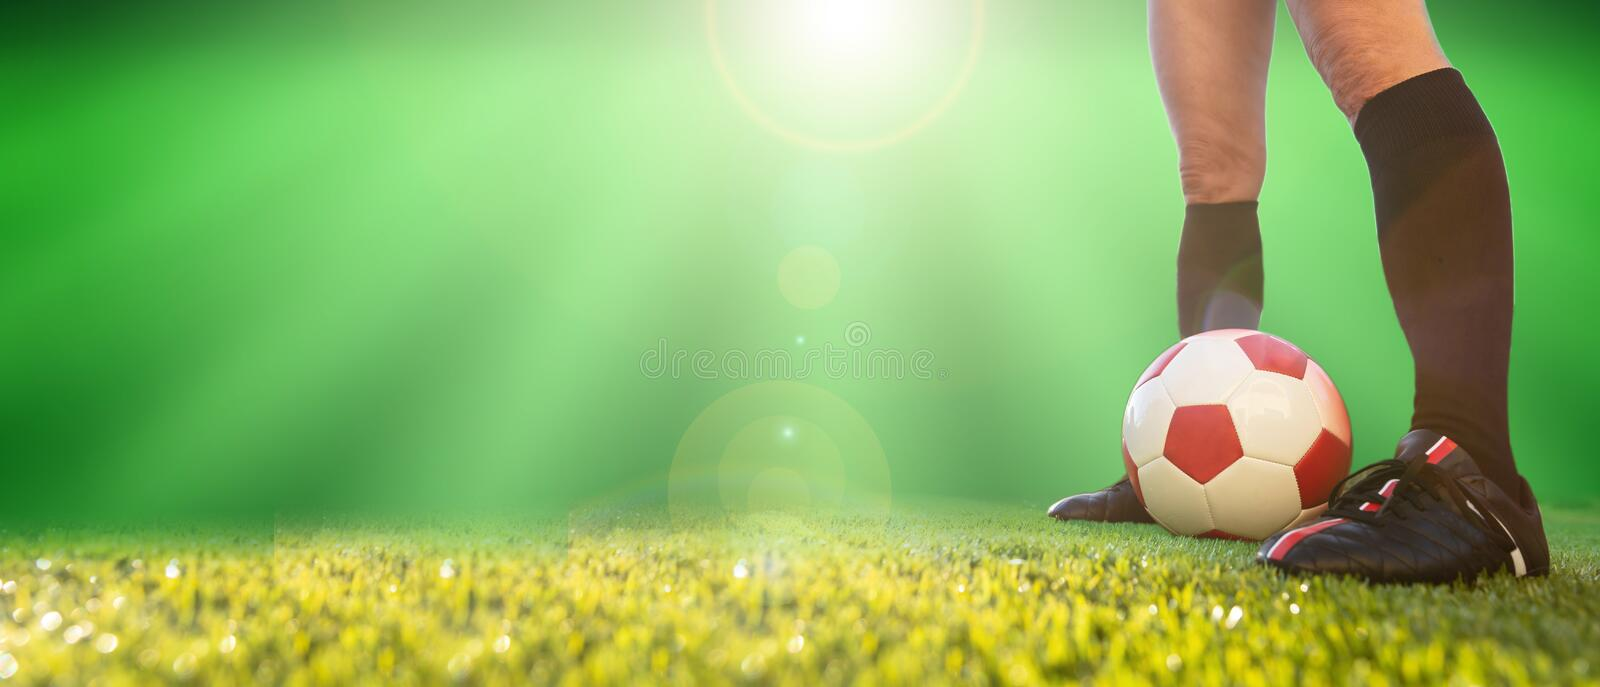 Women soccer, football. Female legs and a soccer ball on the grass, banner. Copy space stock image